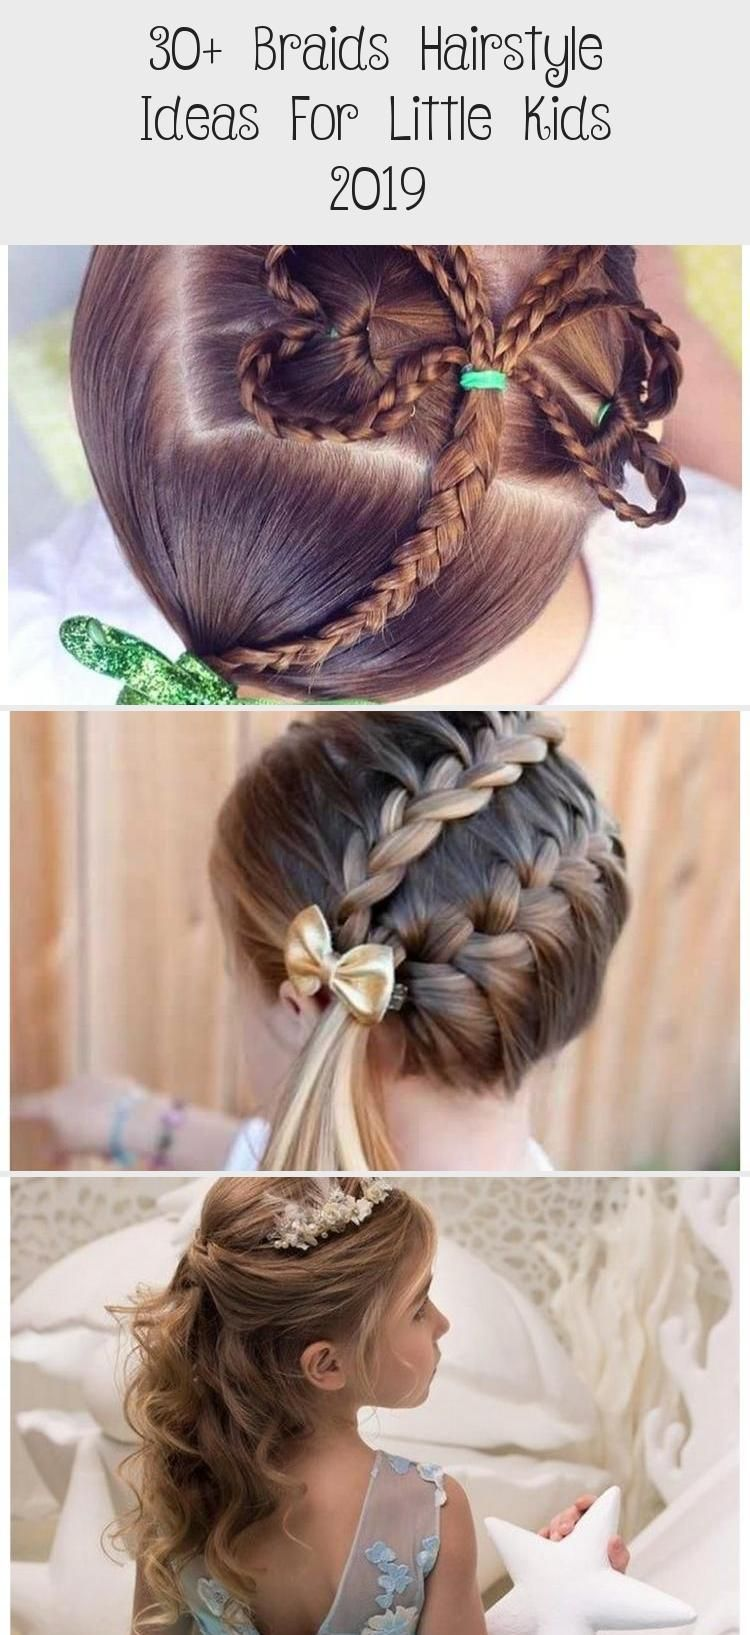 Finding Braids Hairstyle Ideas For Little Kids Online Braids Hairstyle Ideas For Little Kids Explained The H In 2020 Hair Styles Braided Hairstyles Natural Hair Salons